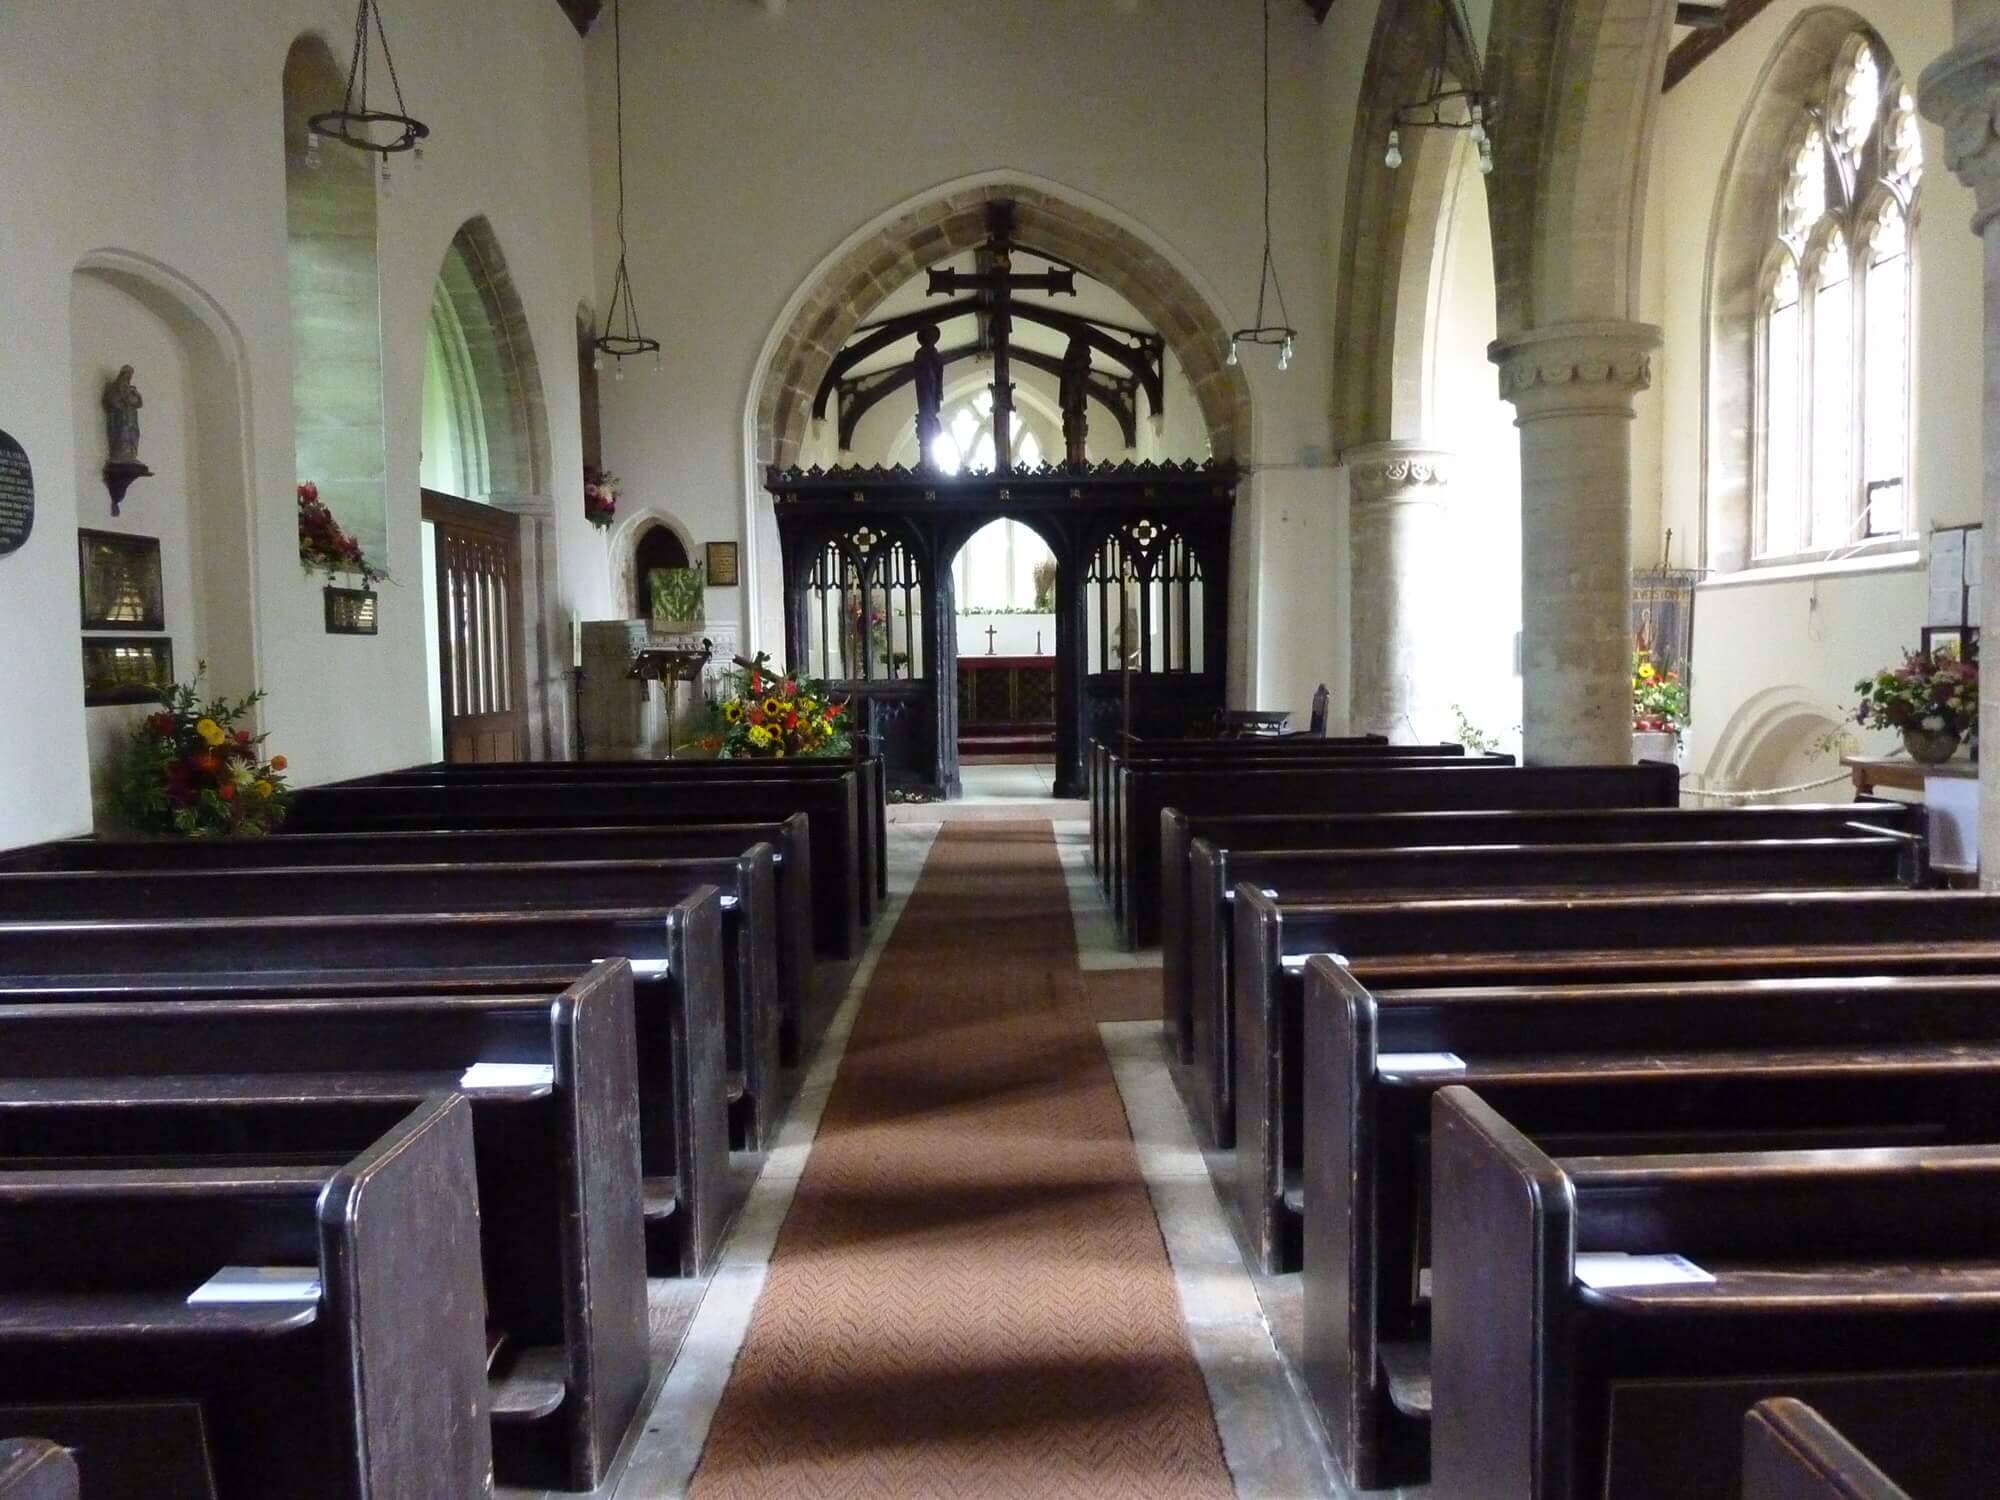 St Mary's Church - The Nave